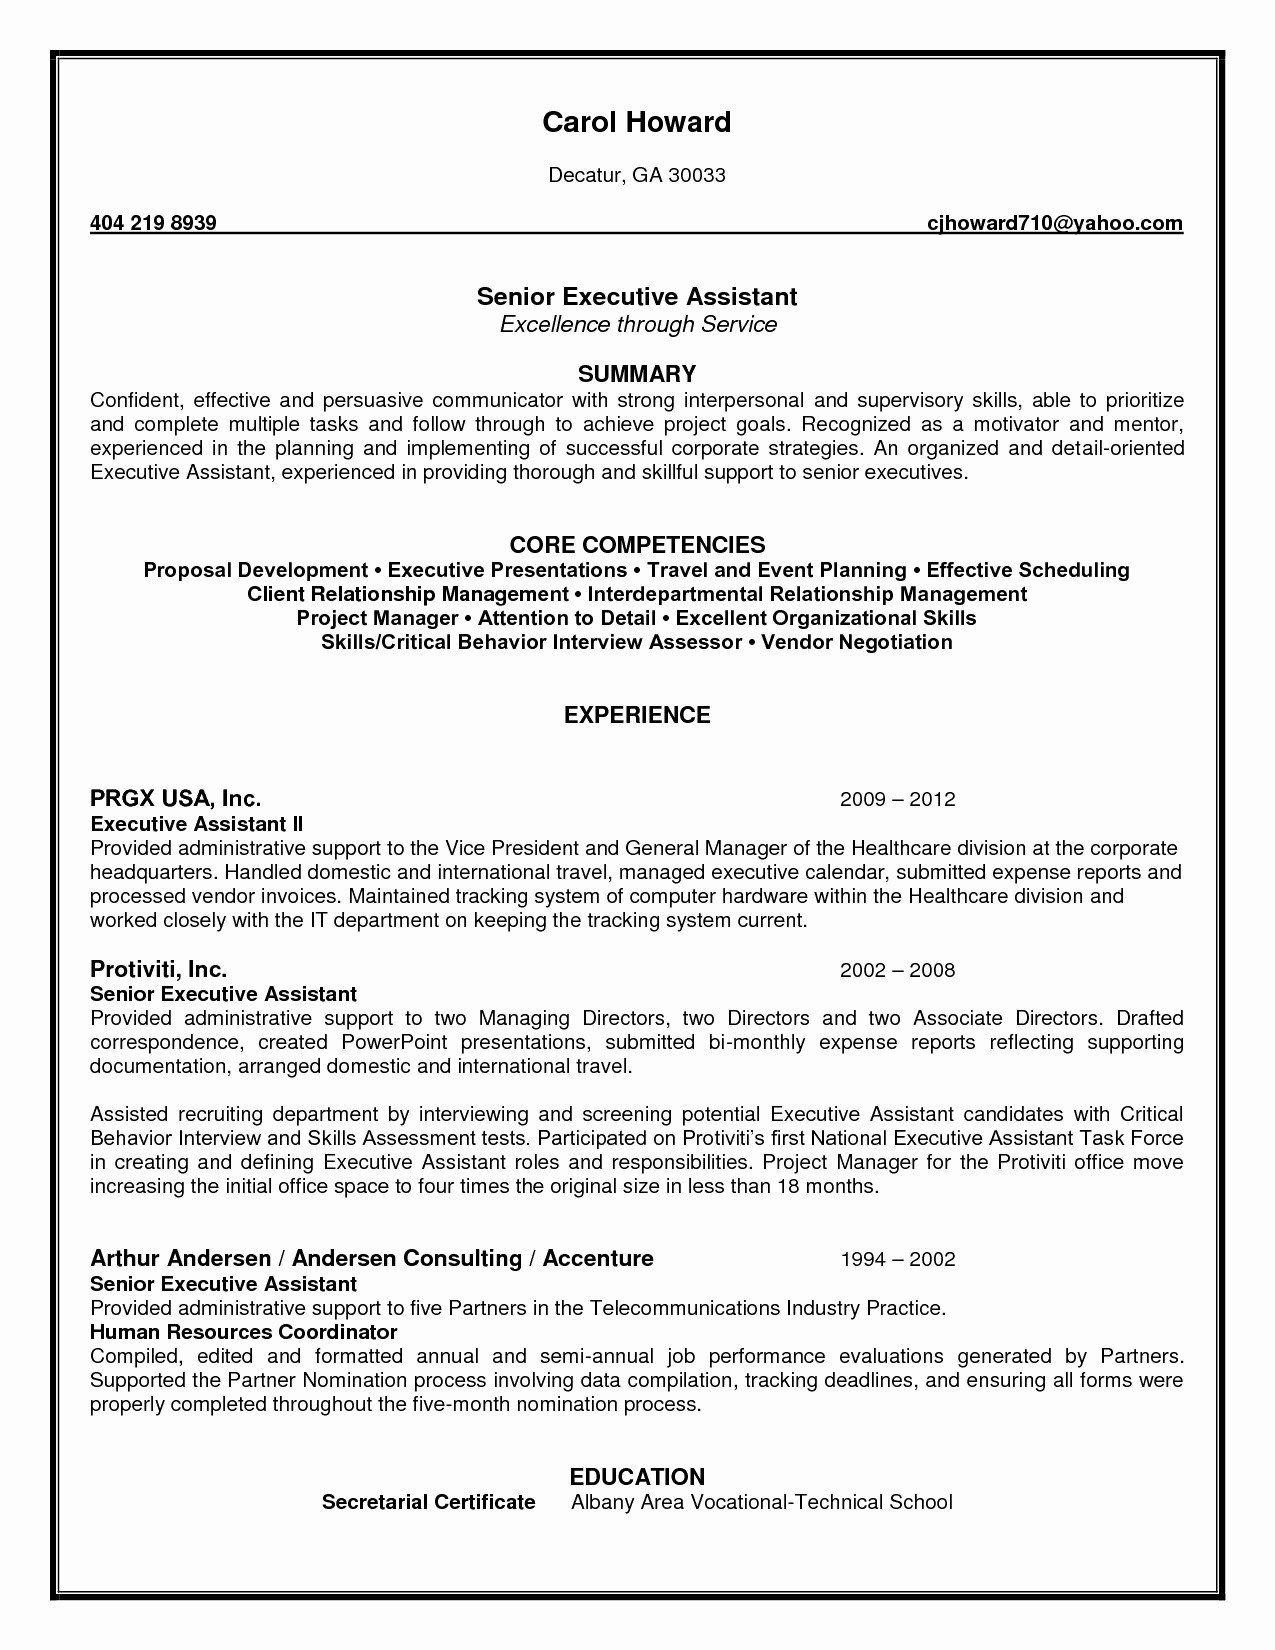 Medical Administrative assistant Resume - Executive assistant Resumes Unique Resume Template Executive